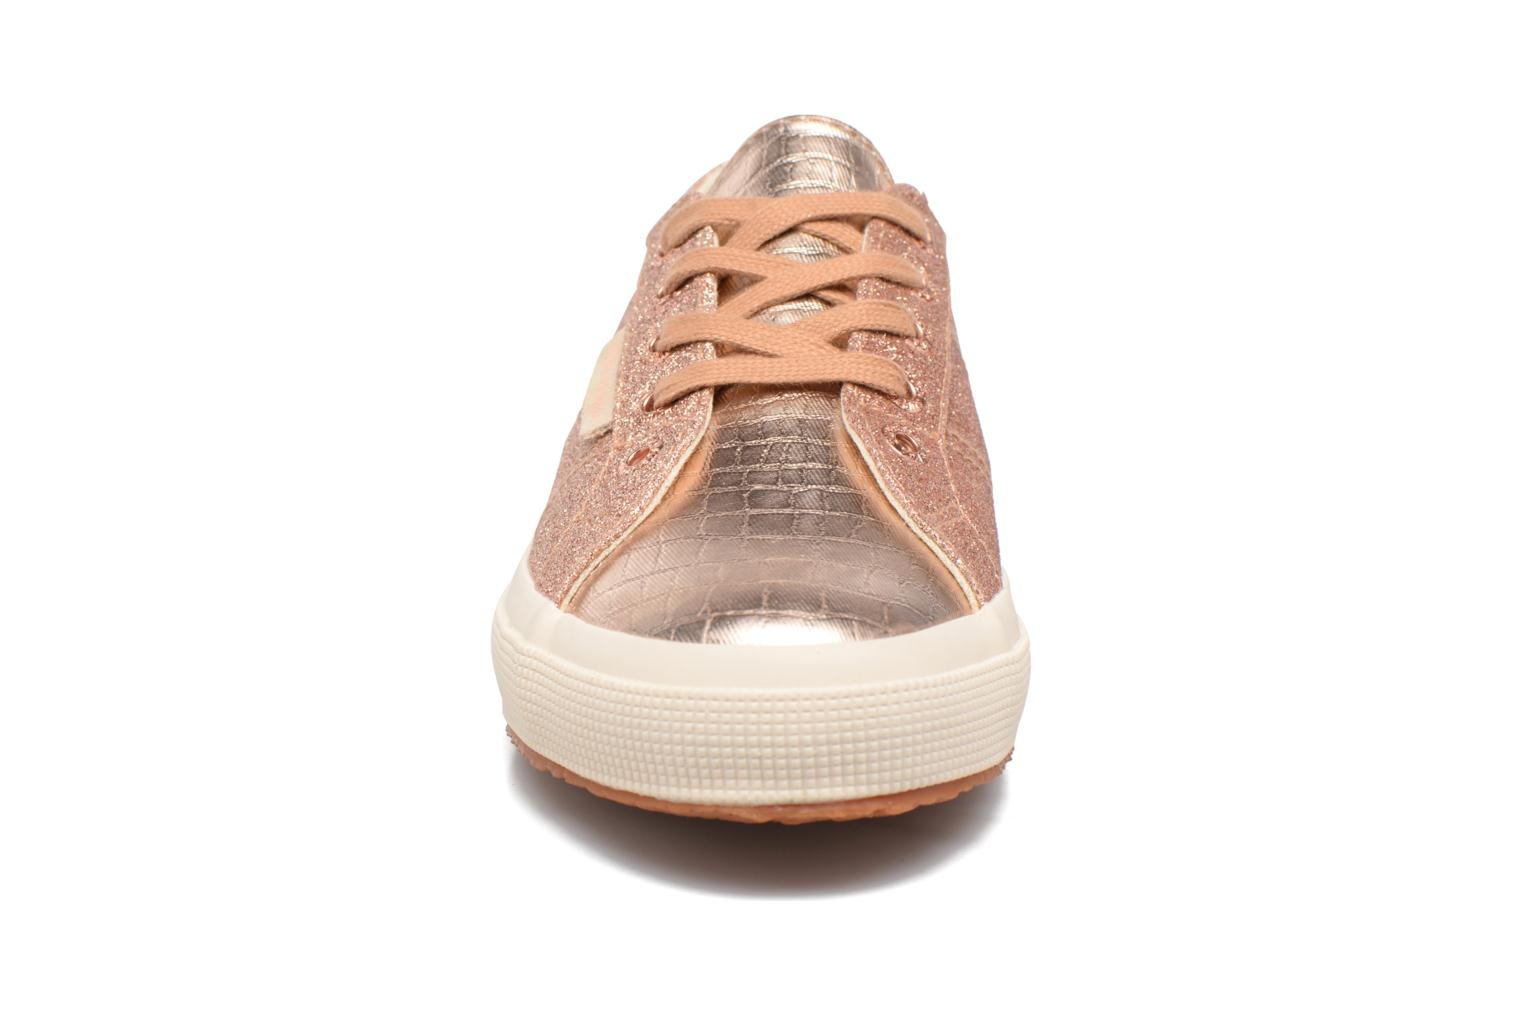 Baskets Superga 2750 Microglitter coco W Or et bronze vue portées chaussures